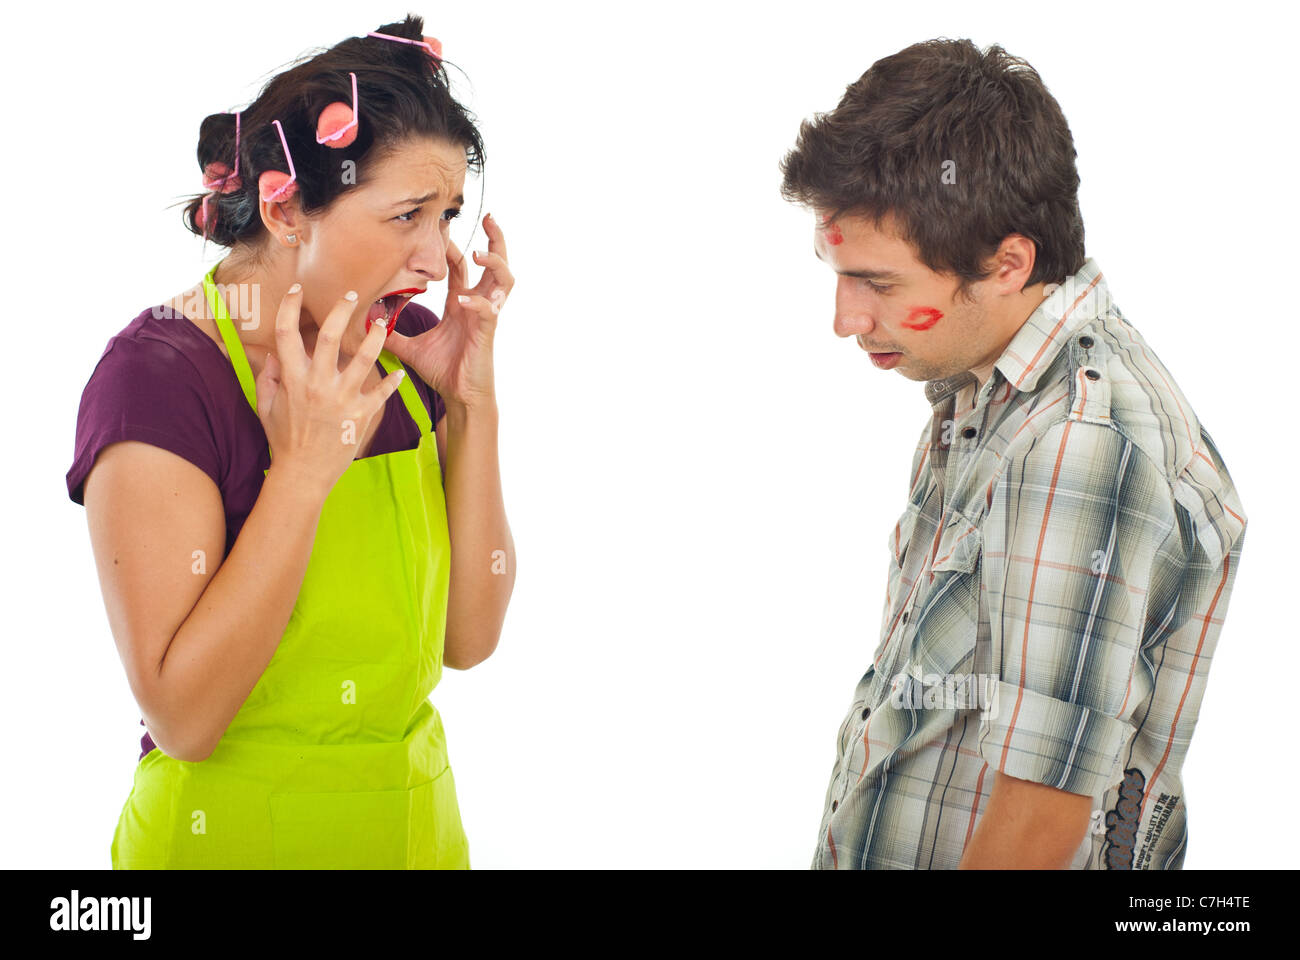 Angry housewife arguing with her unfaithful husband over white background - Stock Image